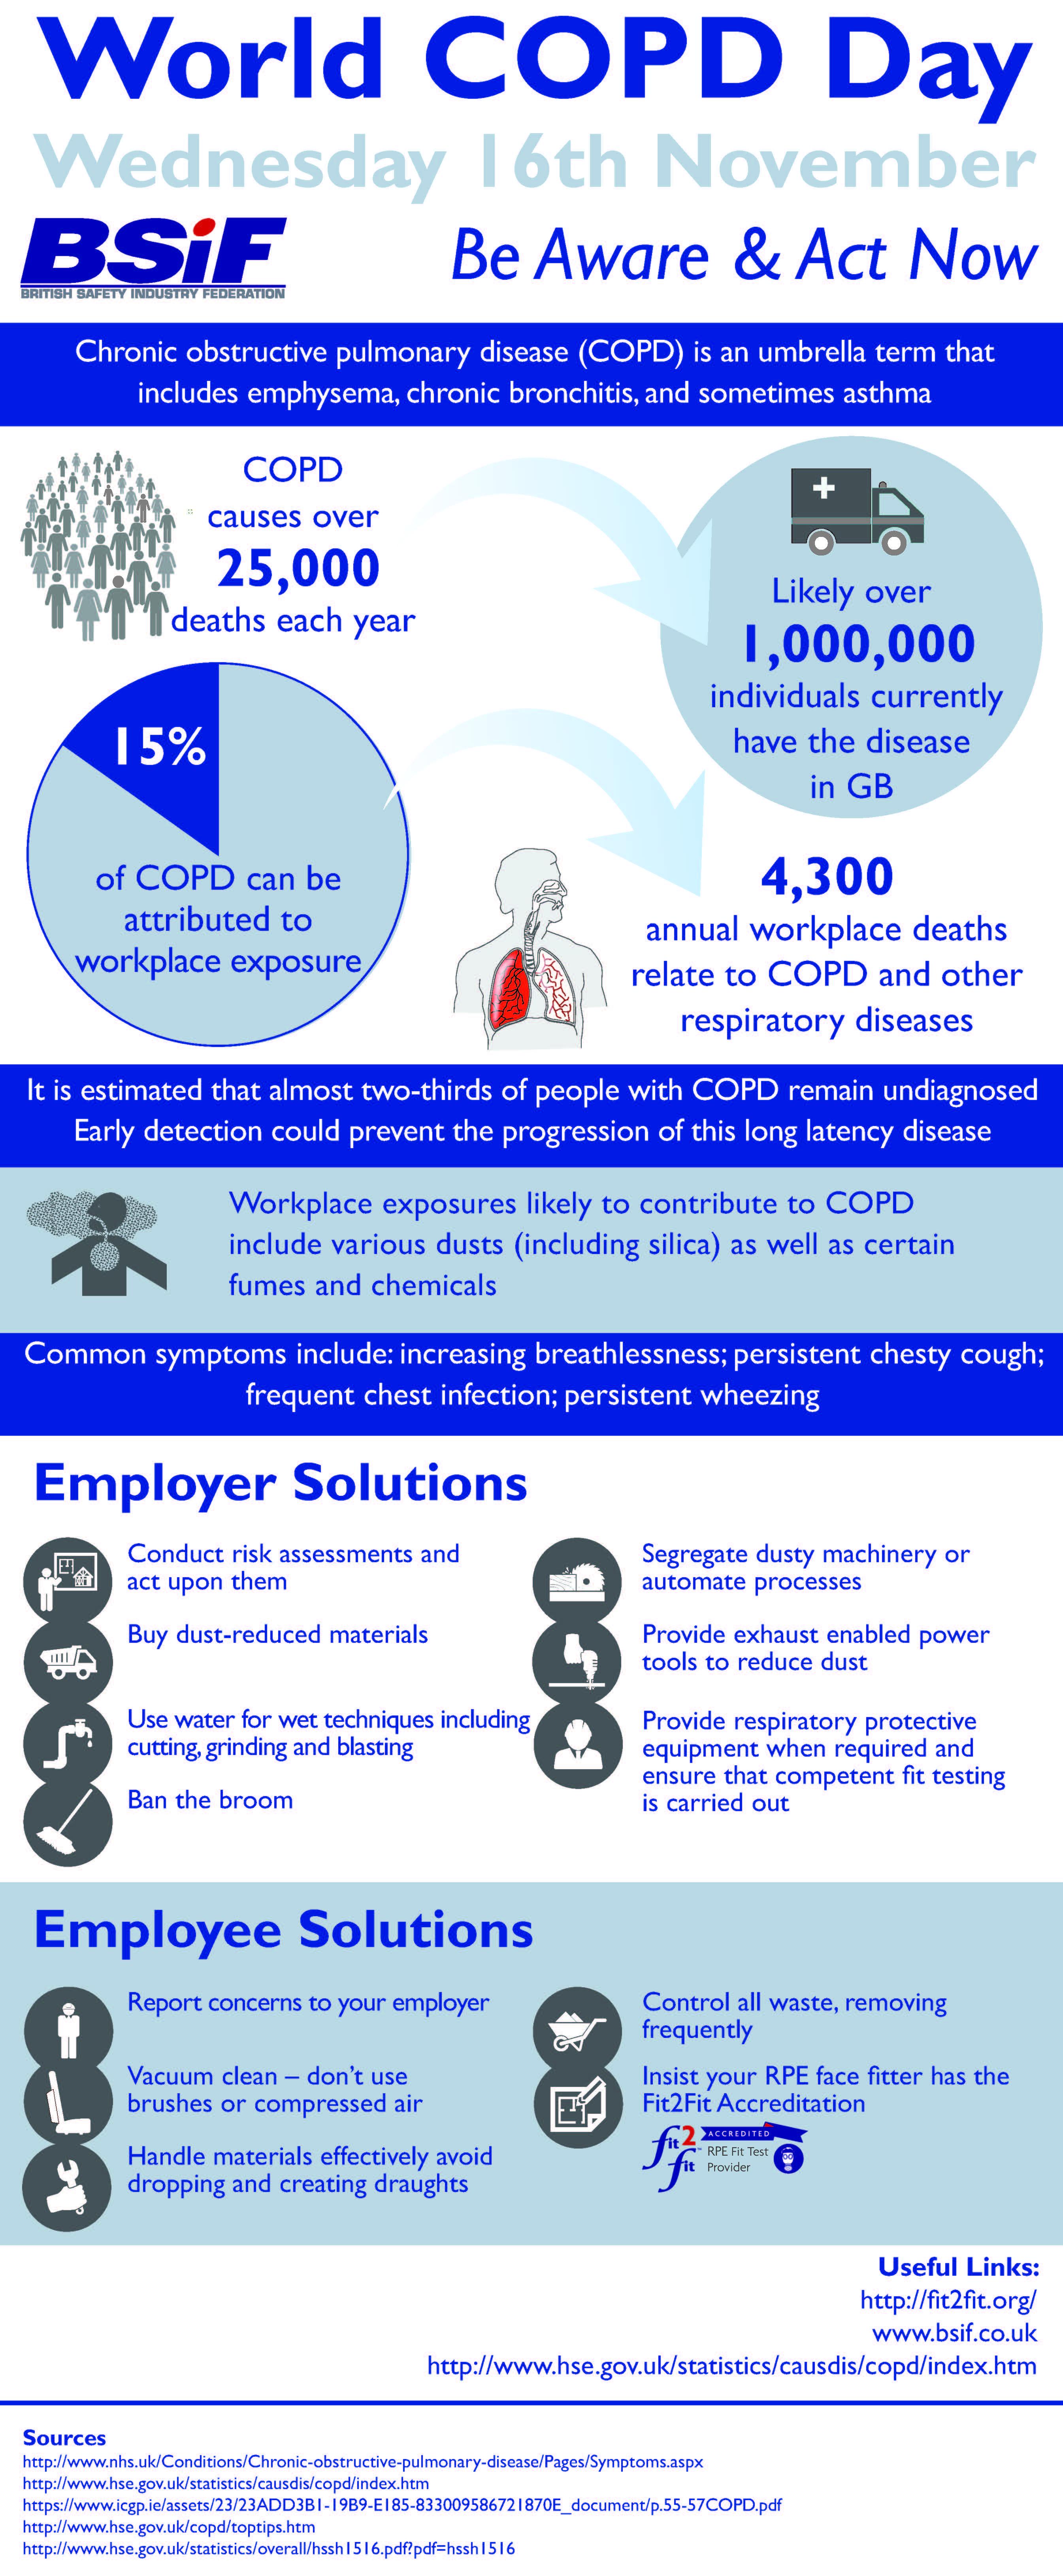 bsif-world-copd-day-jpeg